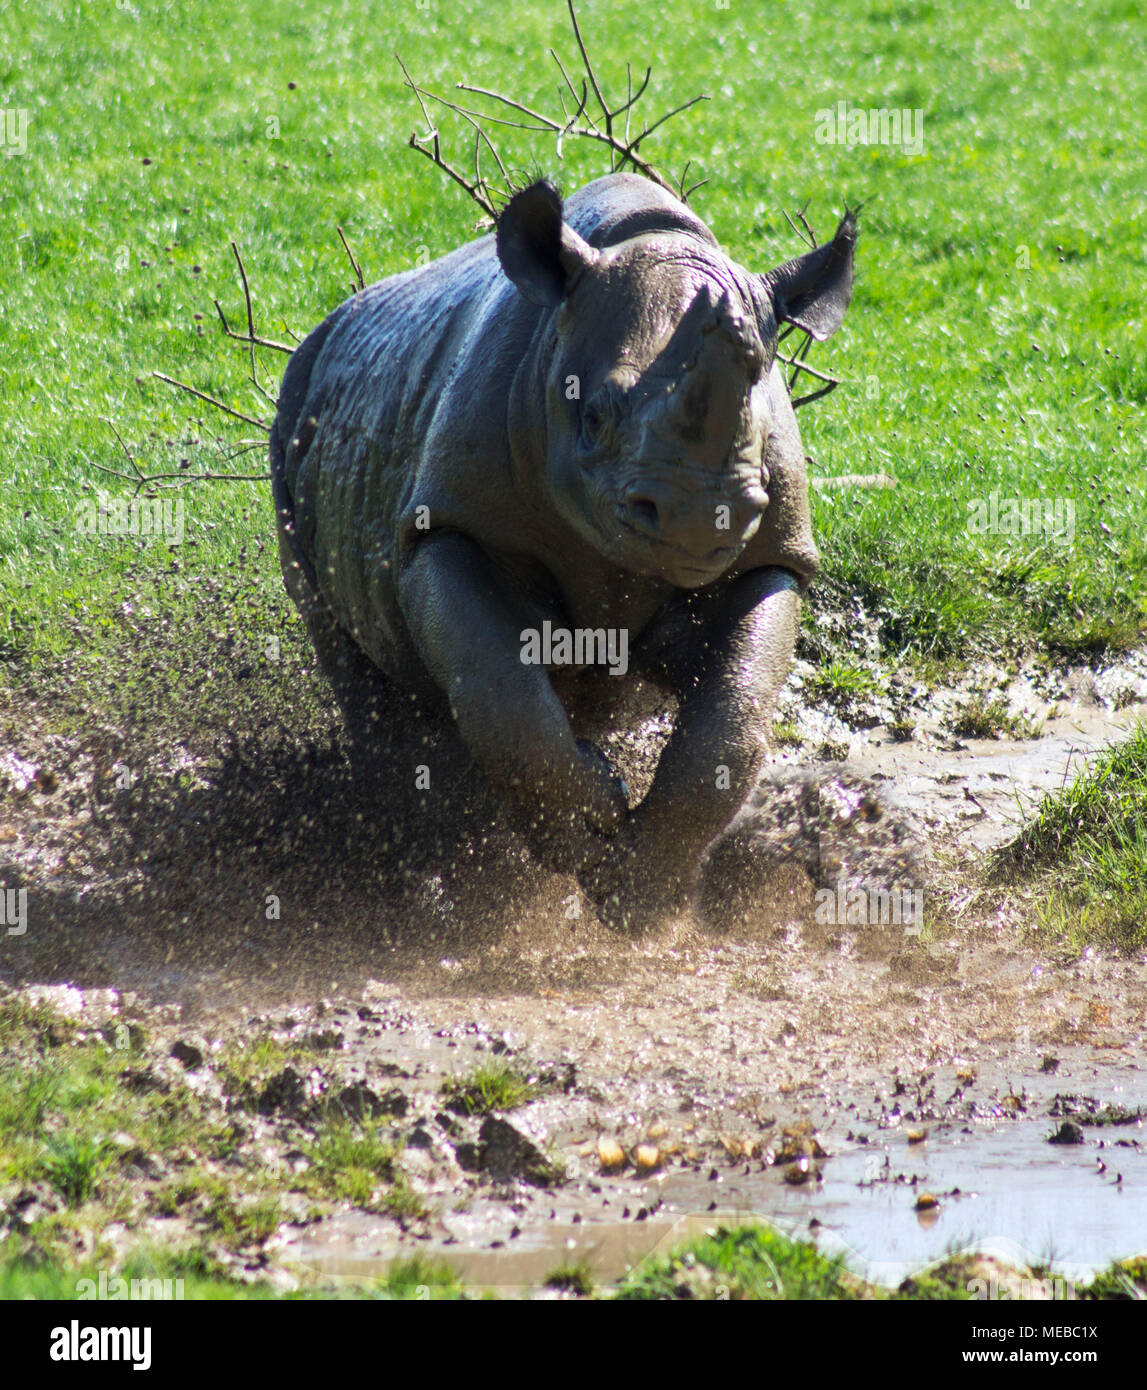 Rhinoceros running through a muddy puddle - Stock Image